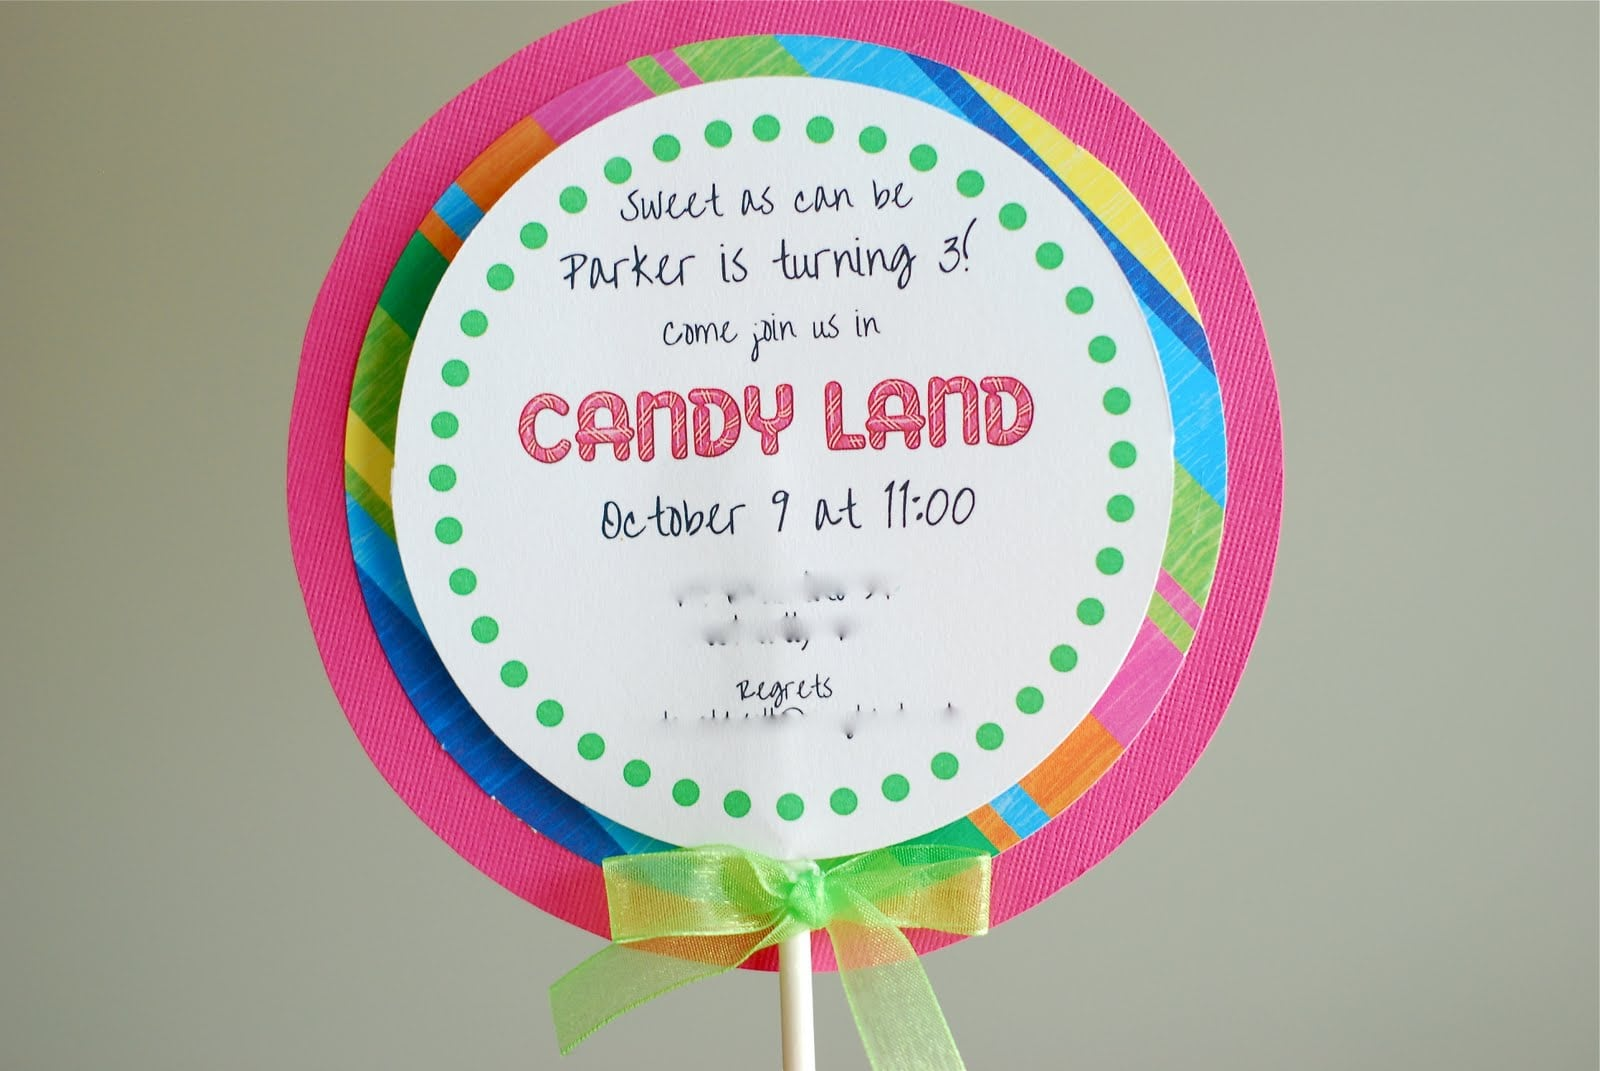 Candyland Party Invitations Ideas - Mickey Mouse Invitations Templates